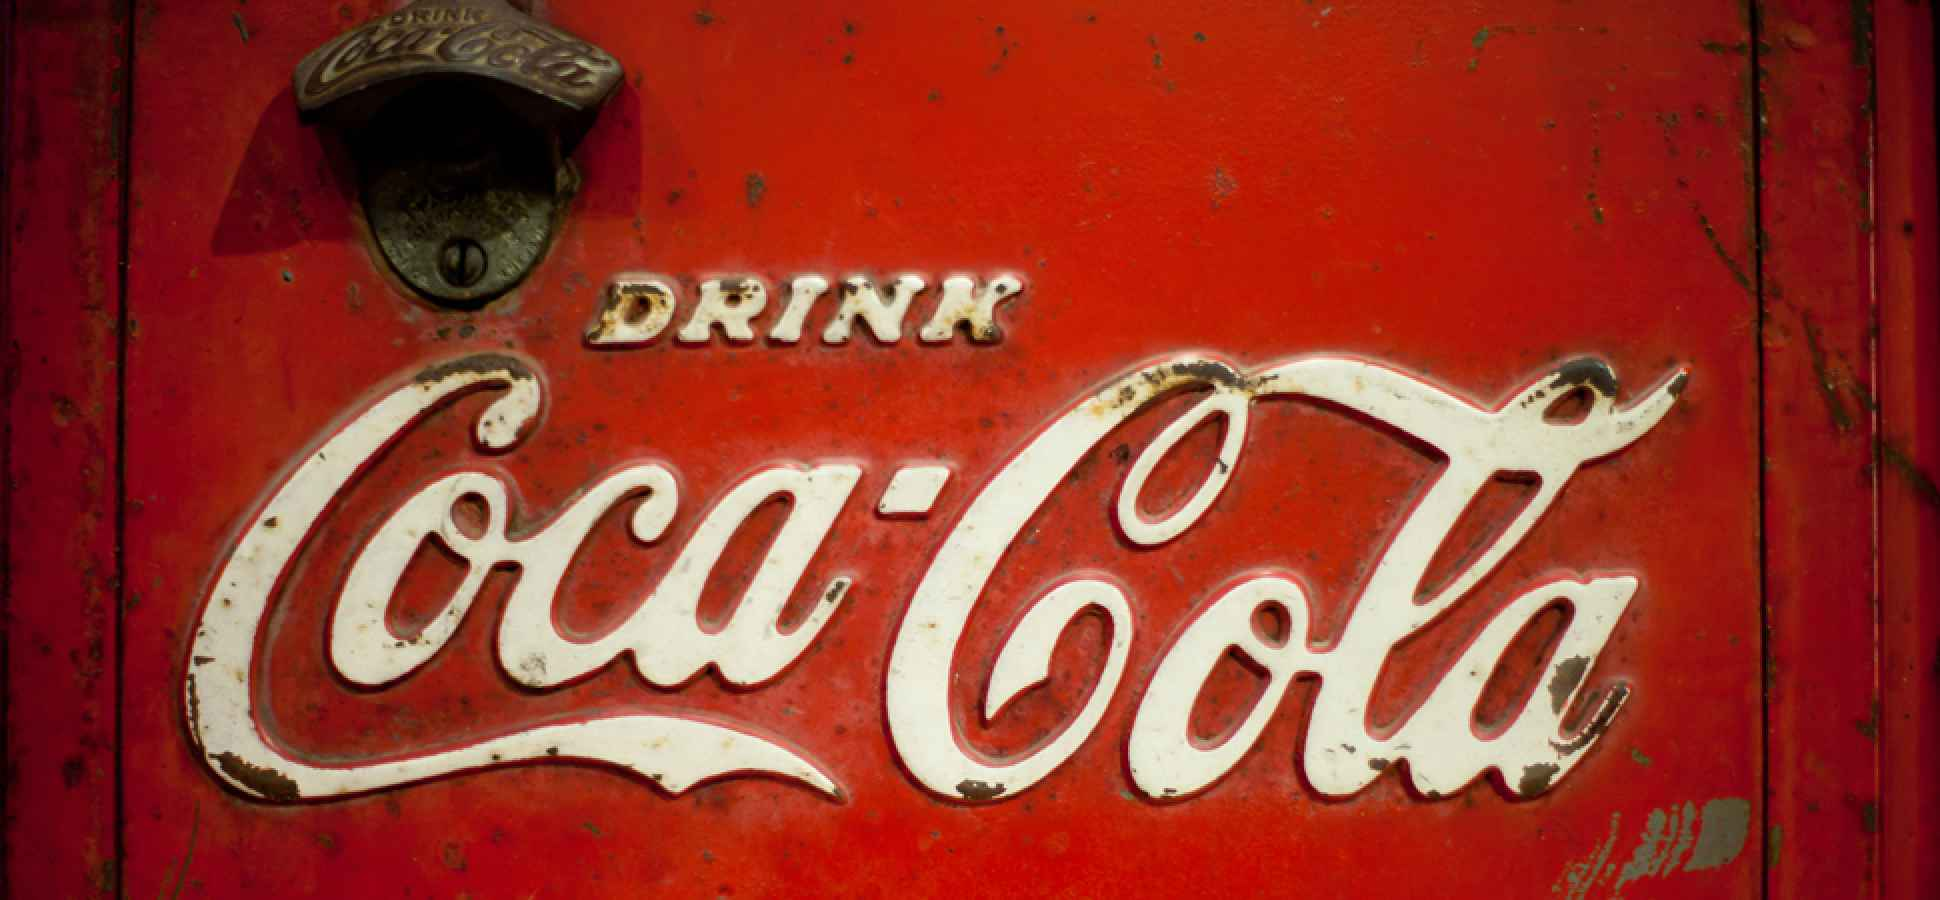 7 Deadly Sins to Avoid When Creating a Brand Name